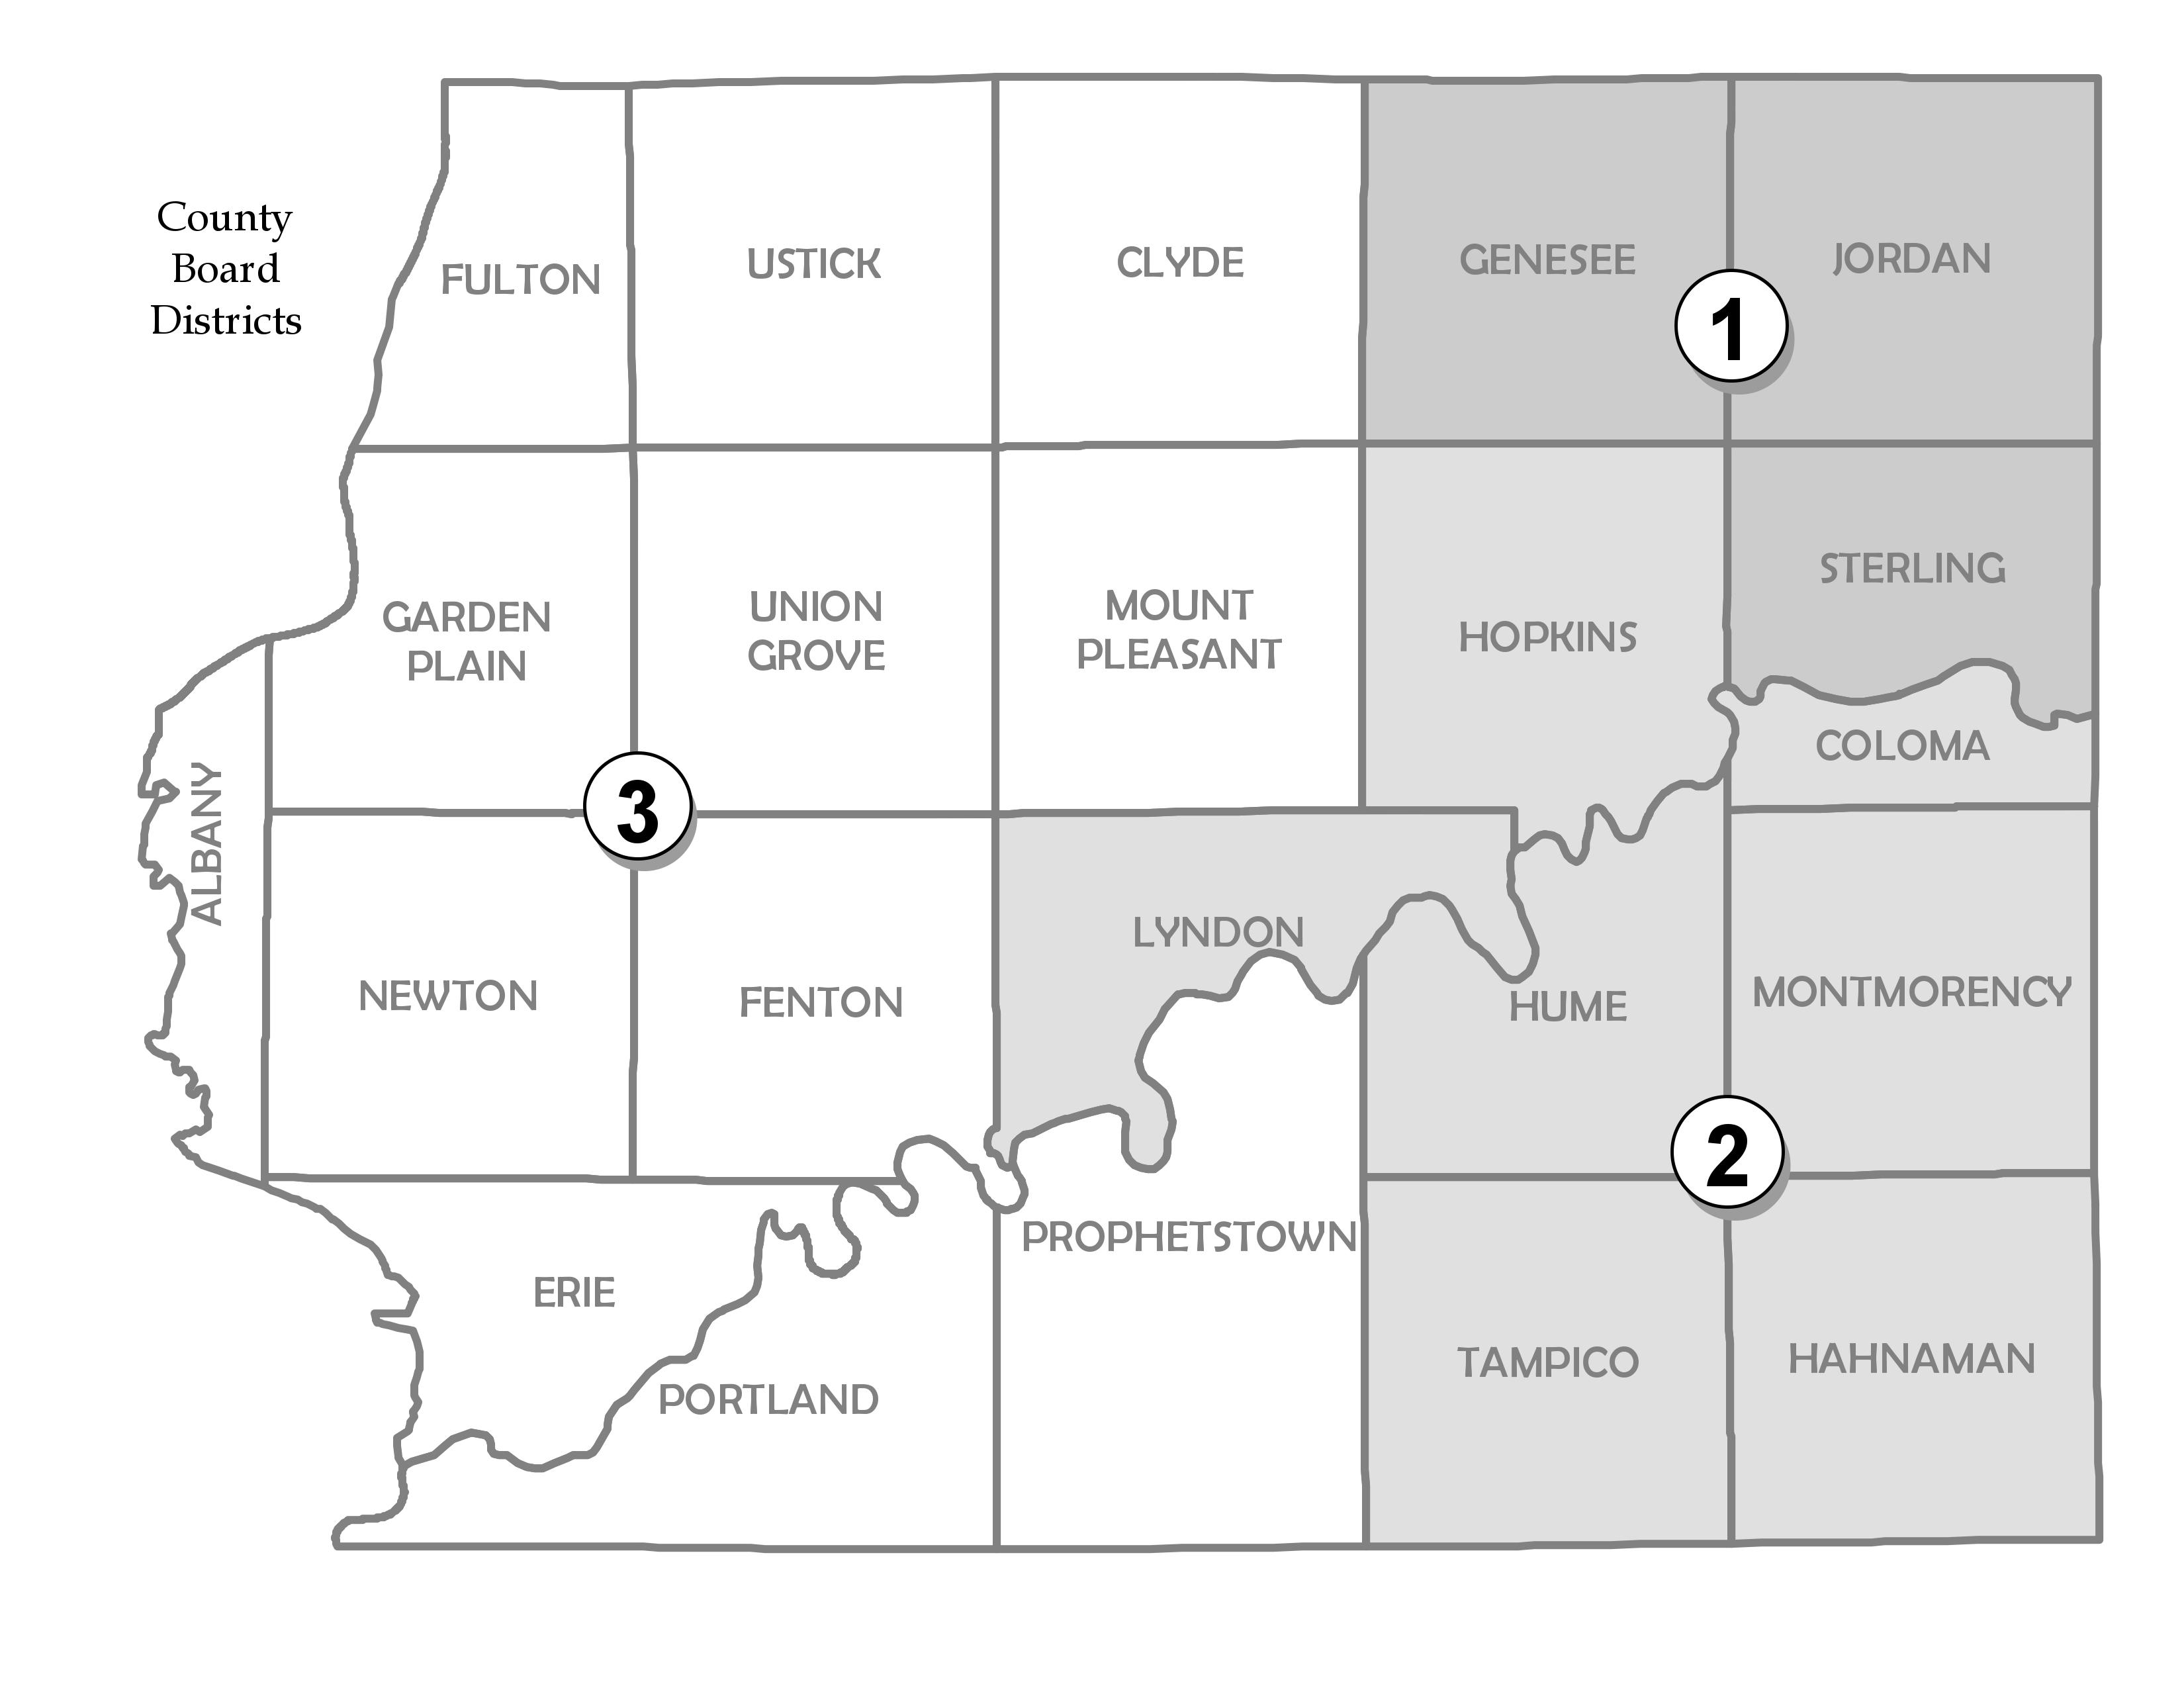 County Board Districts